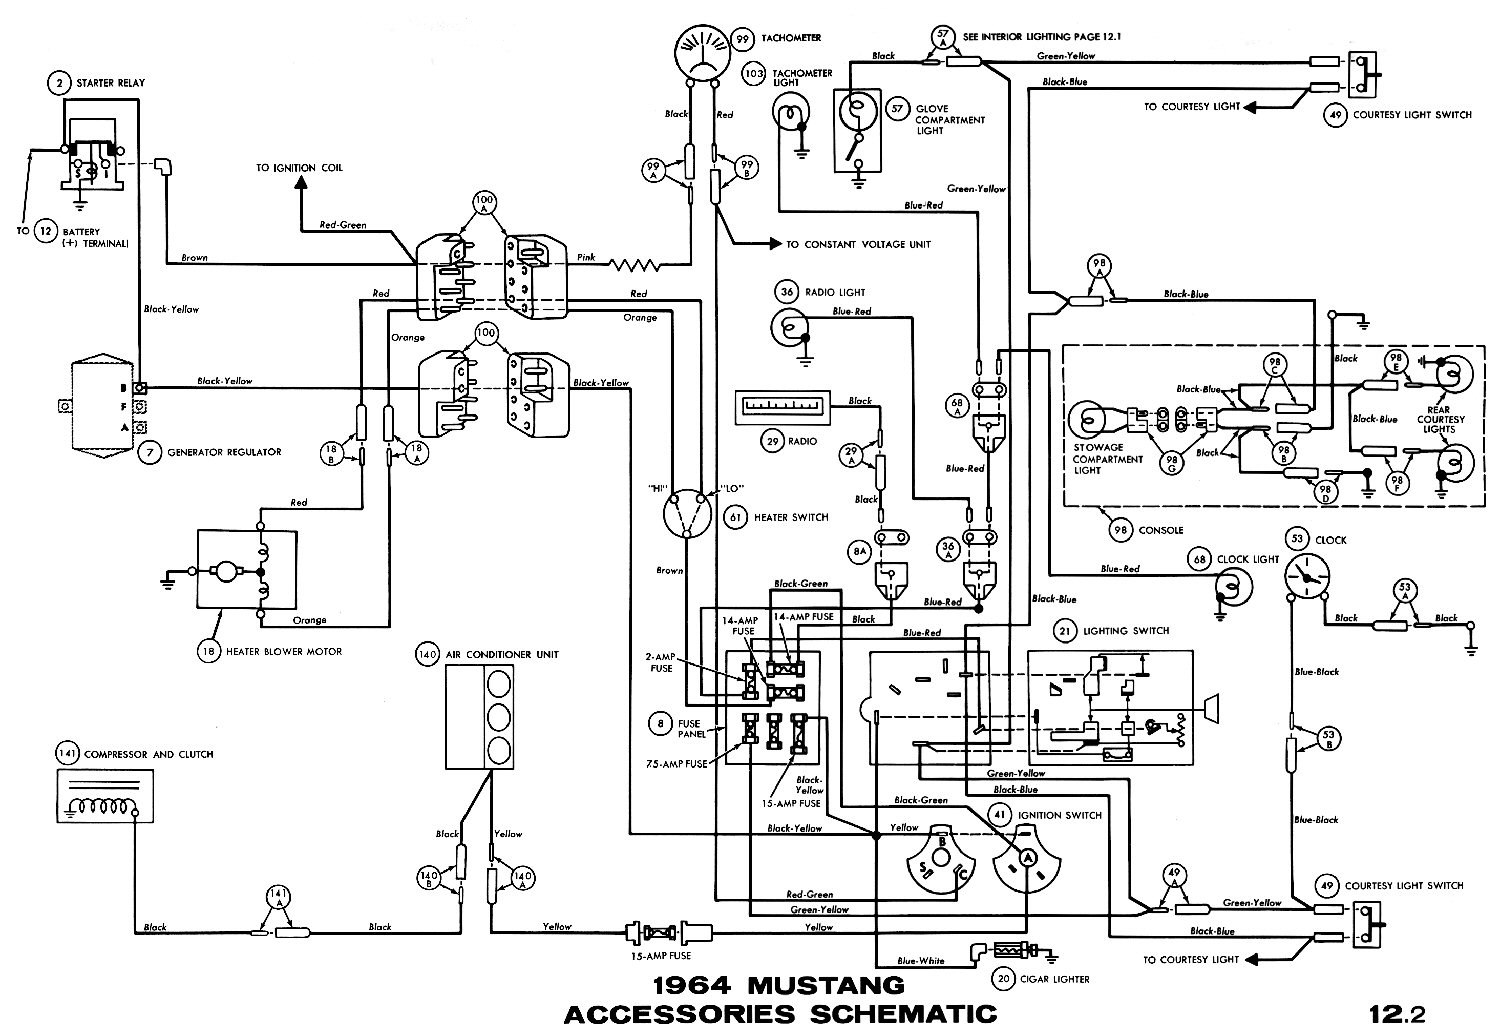 hight resolution of 64 mustang wiring diagram wiring diagram yer 1964 mustang tail light wiring diagram